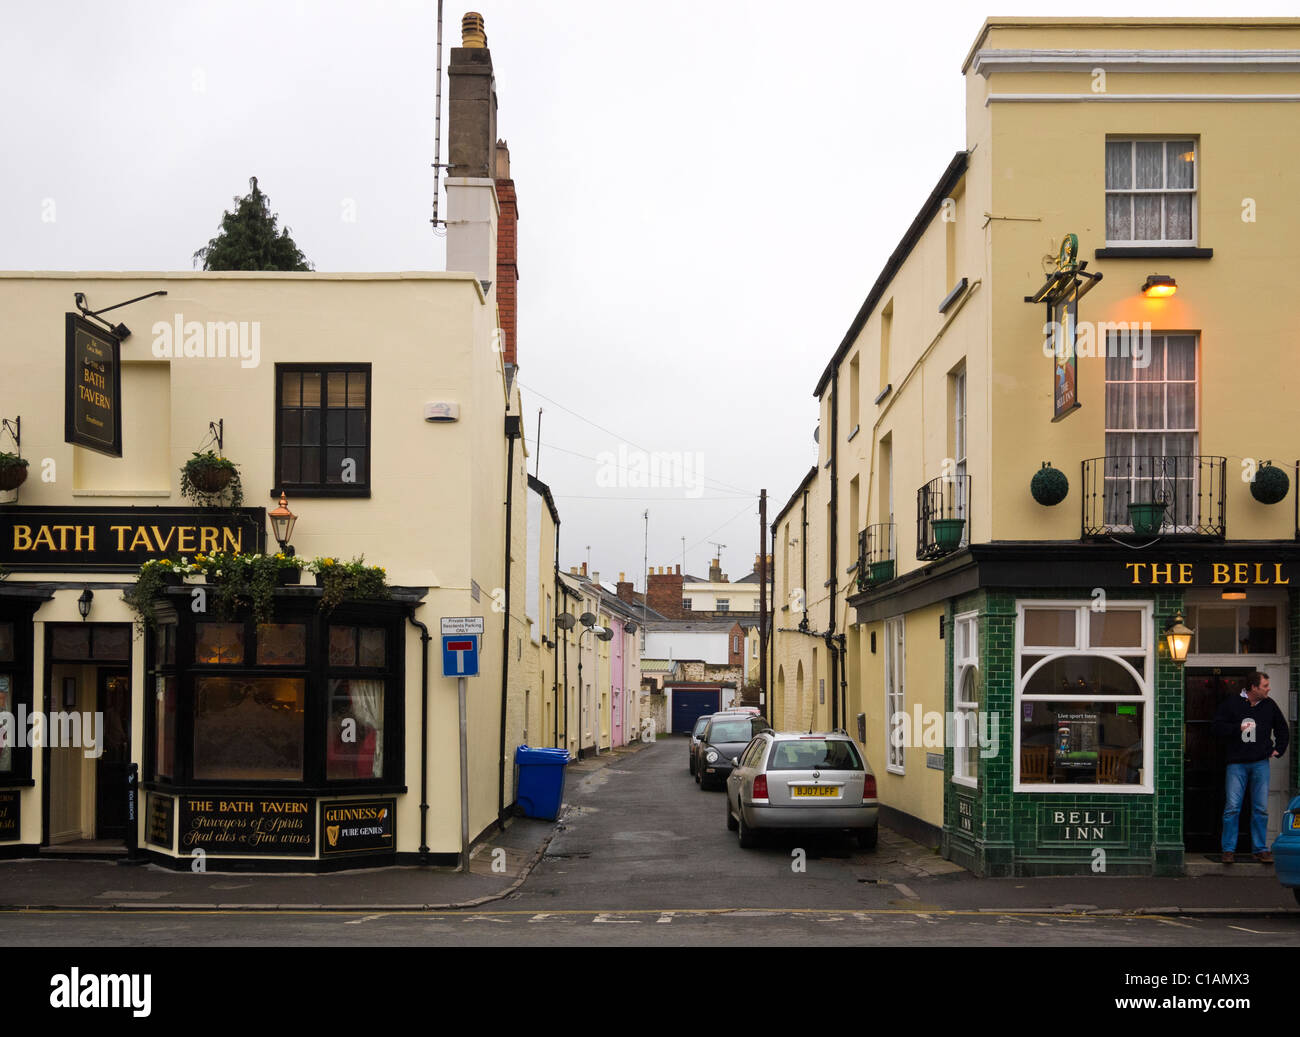 Two pubs, the Bath Tavern and the Bell Inn, Cheltenham, Gloucestershire, UK - Stock Image